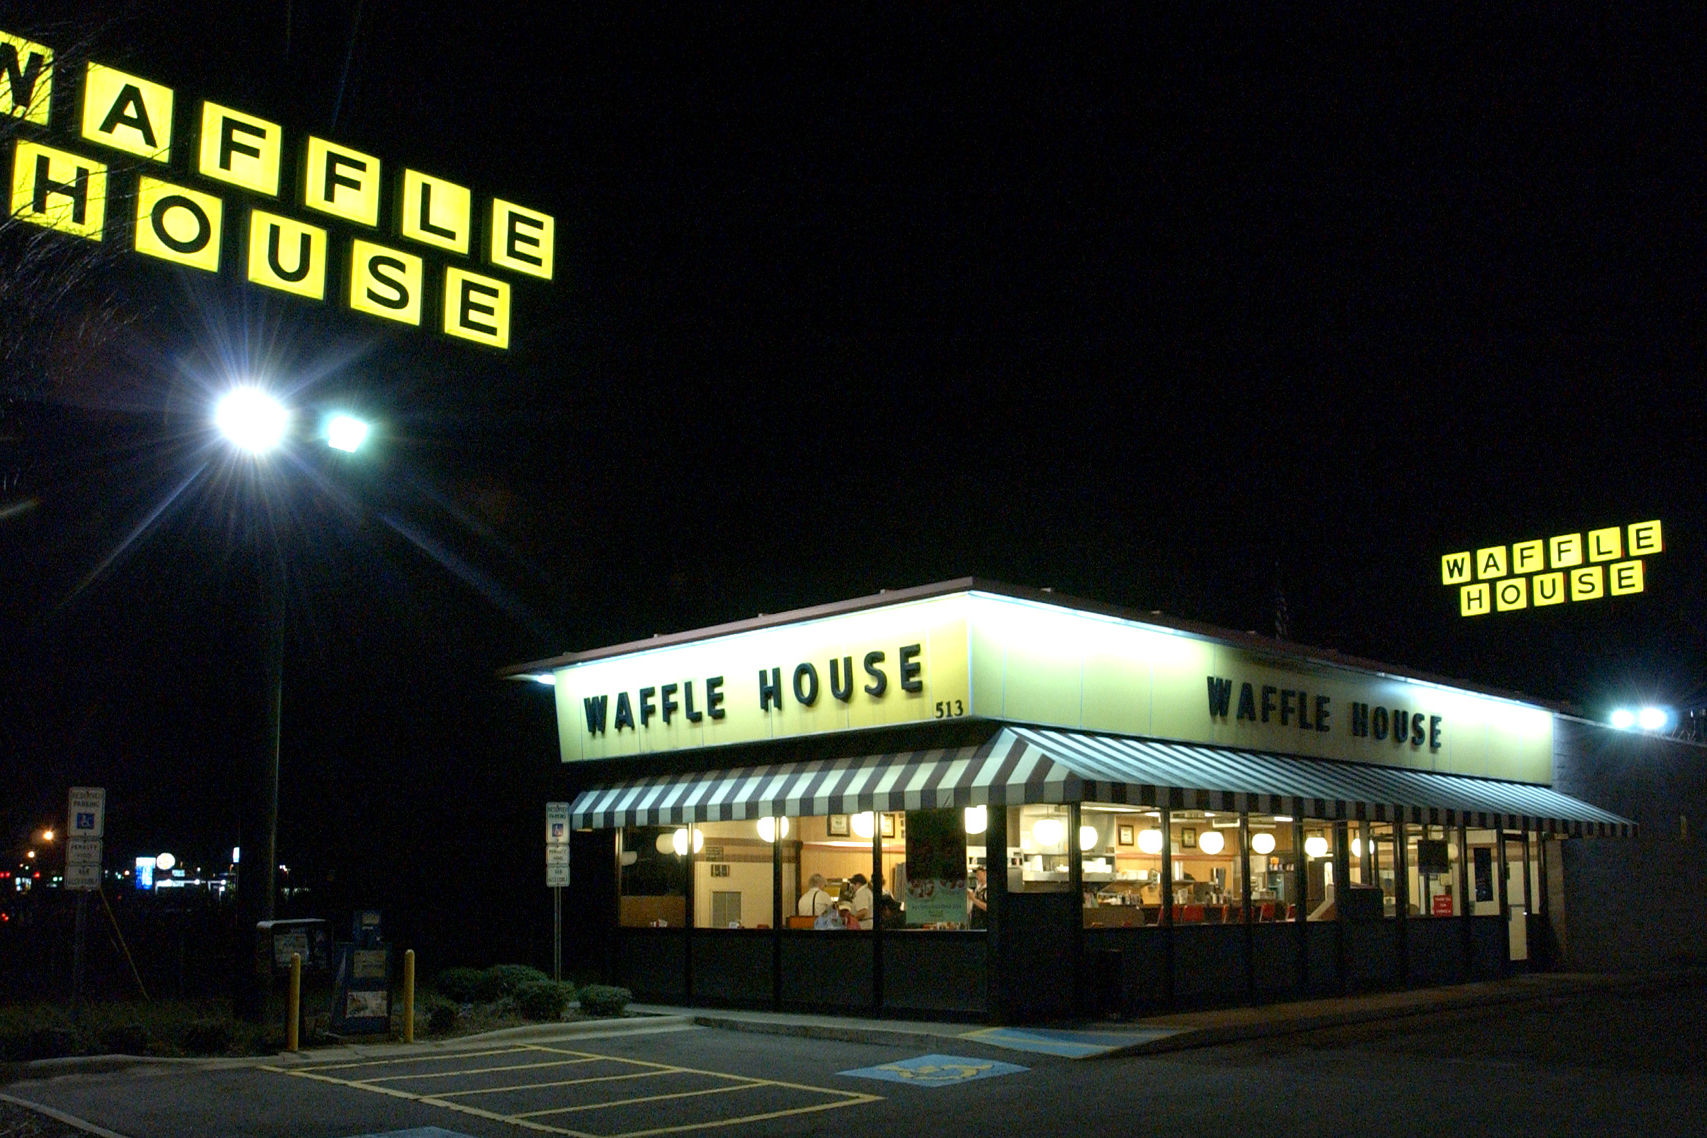 Enjoy Valentine's Day with BAE (Bacon and Eggs) at Waffle House